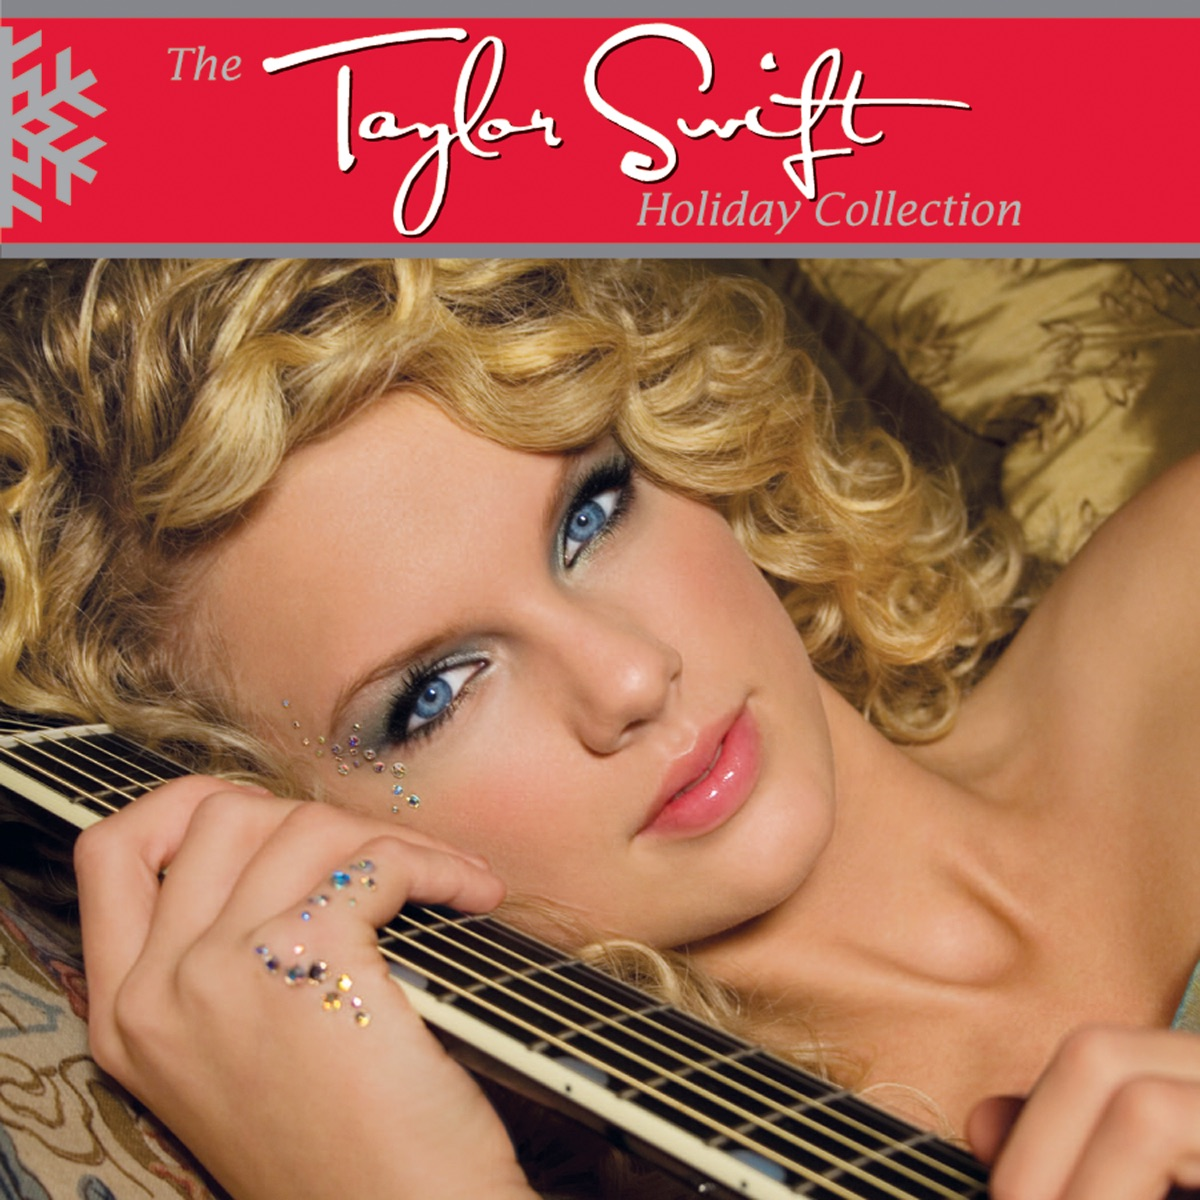 The Taylor Swift Holiday Collection - EP Taylor Swift CD cover